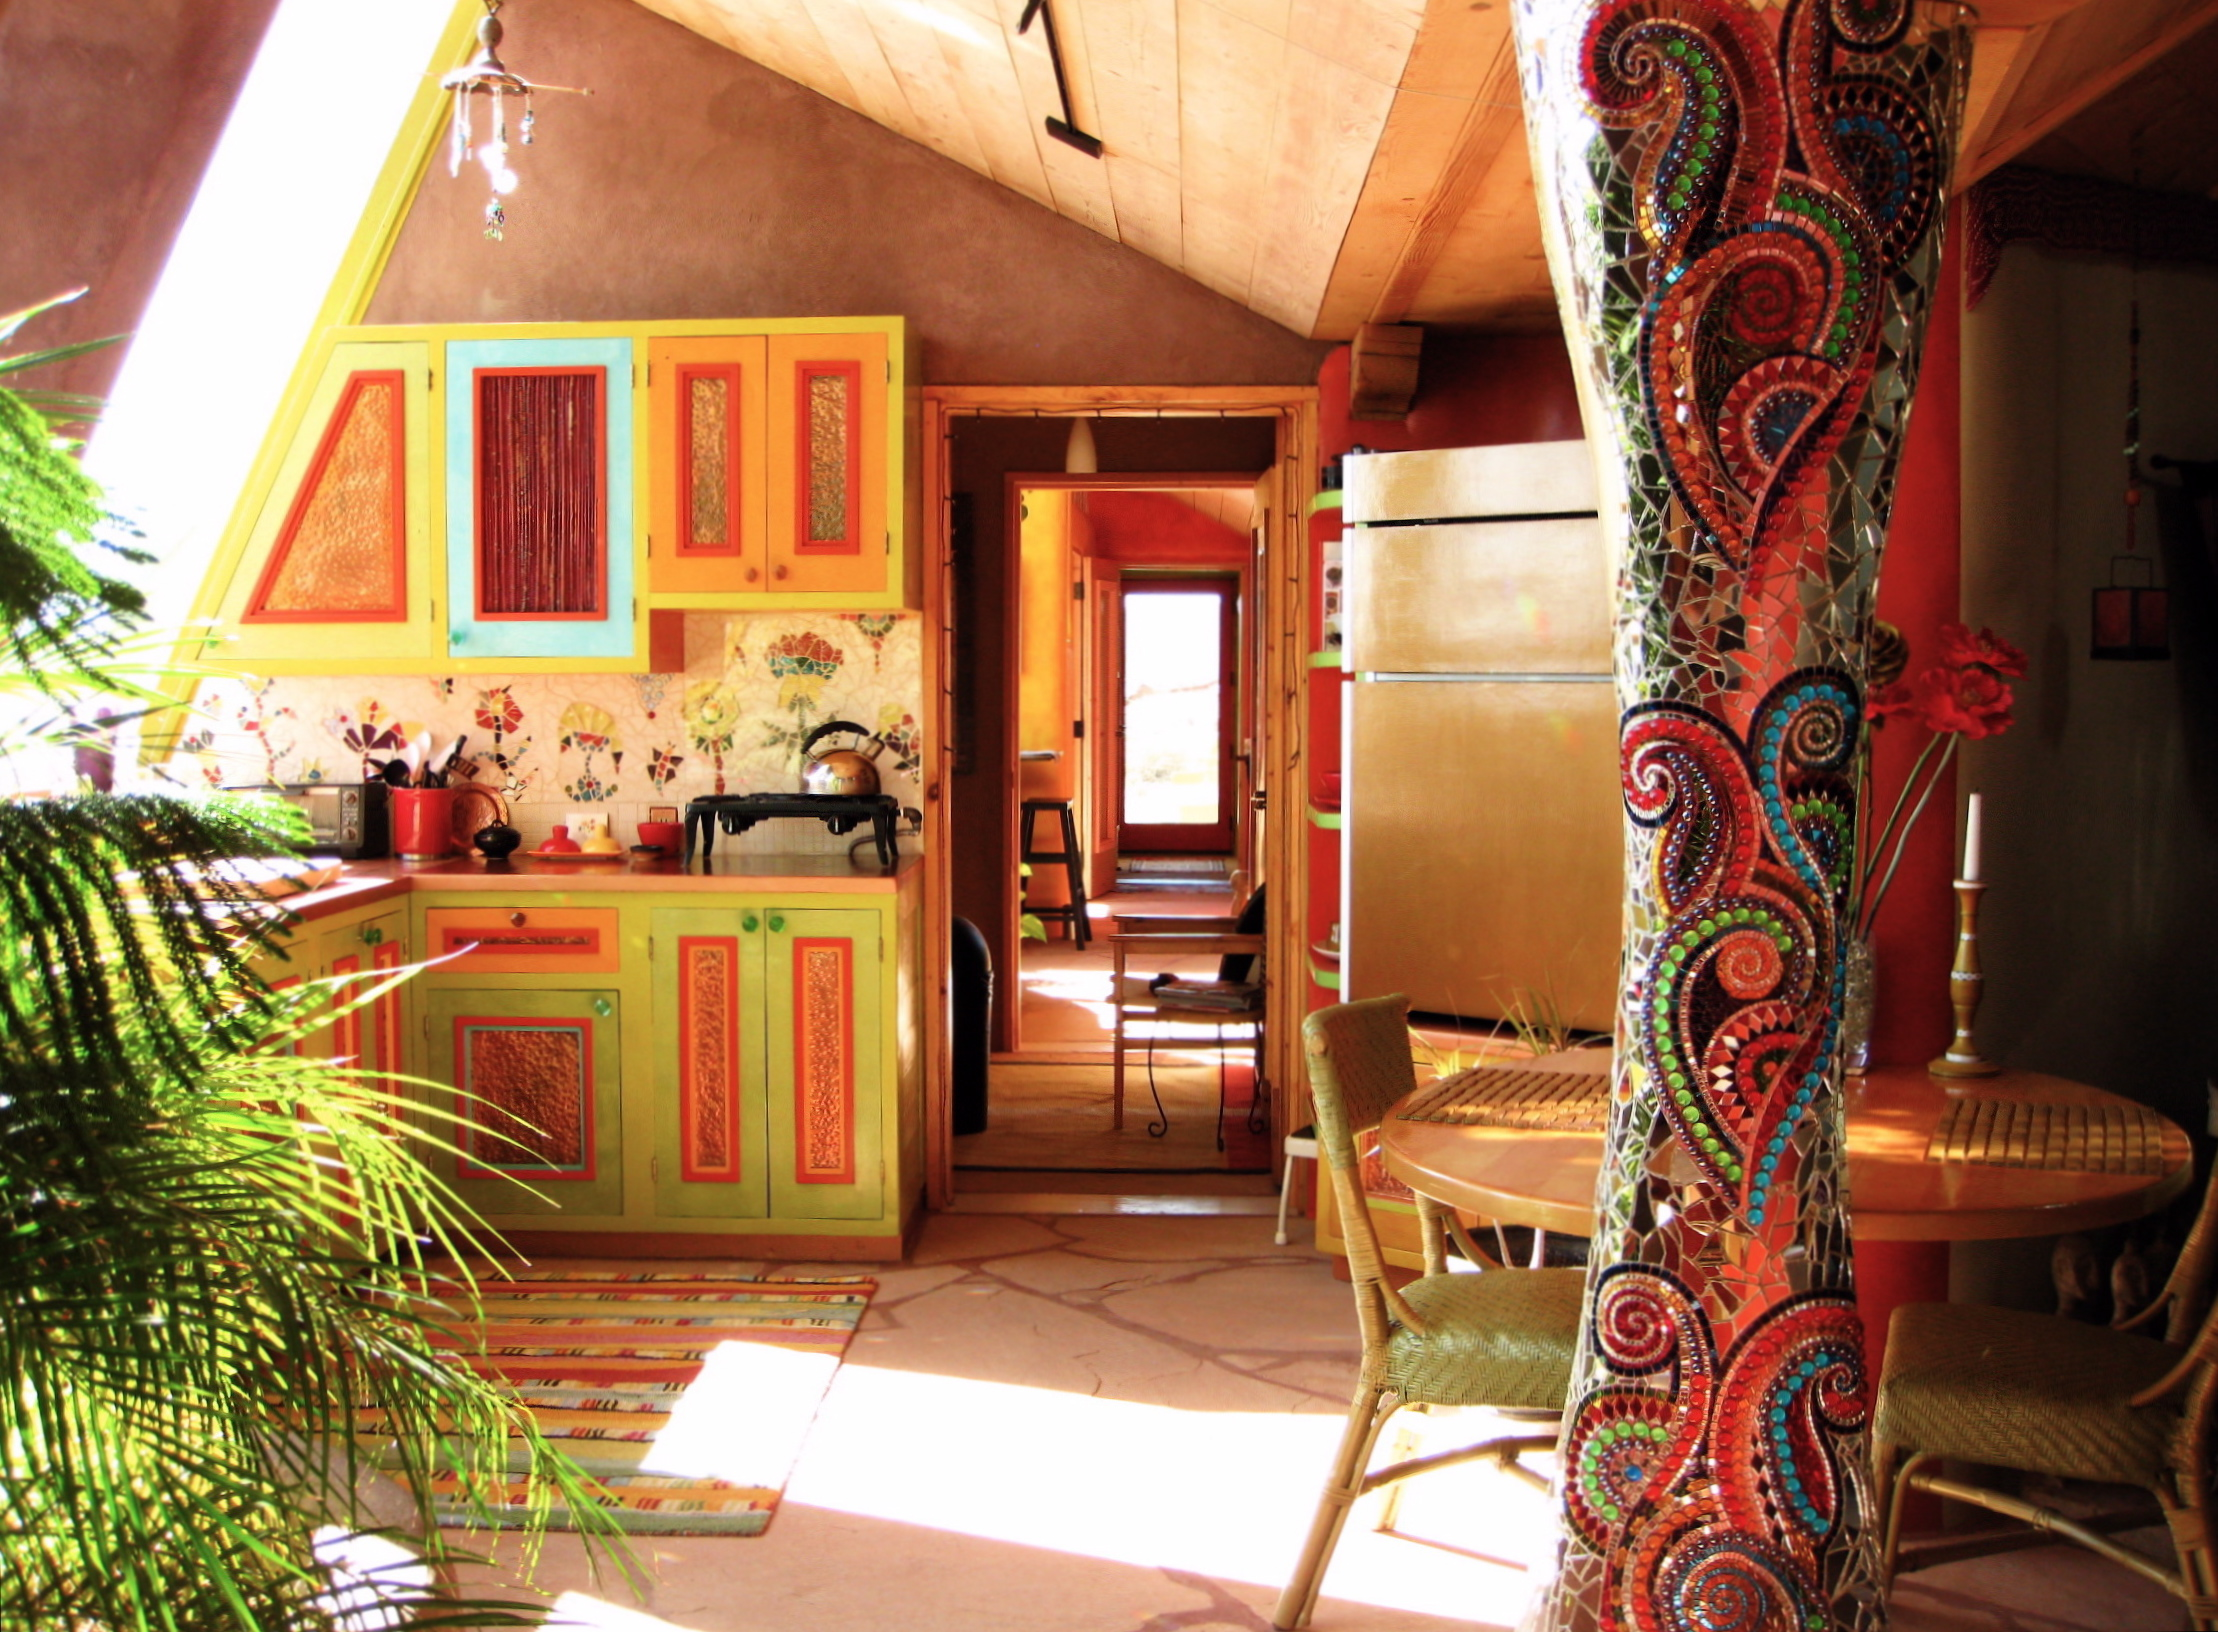 Interior_of_the_Solaria_Earthship